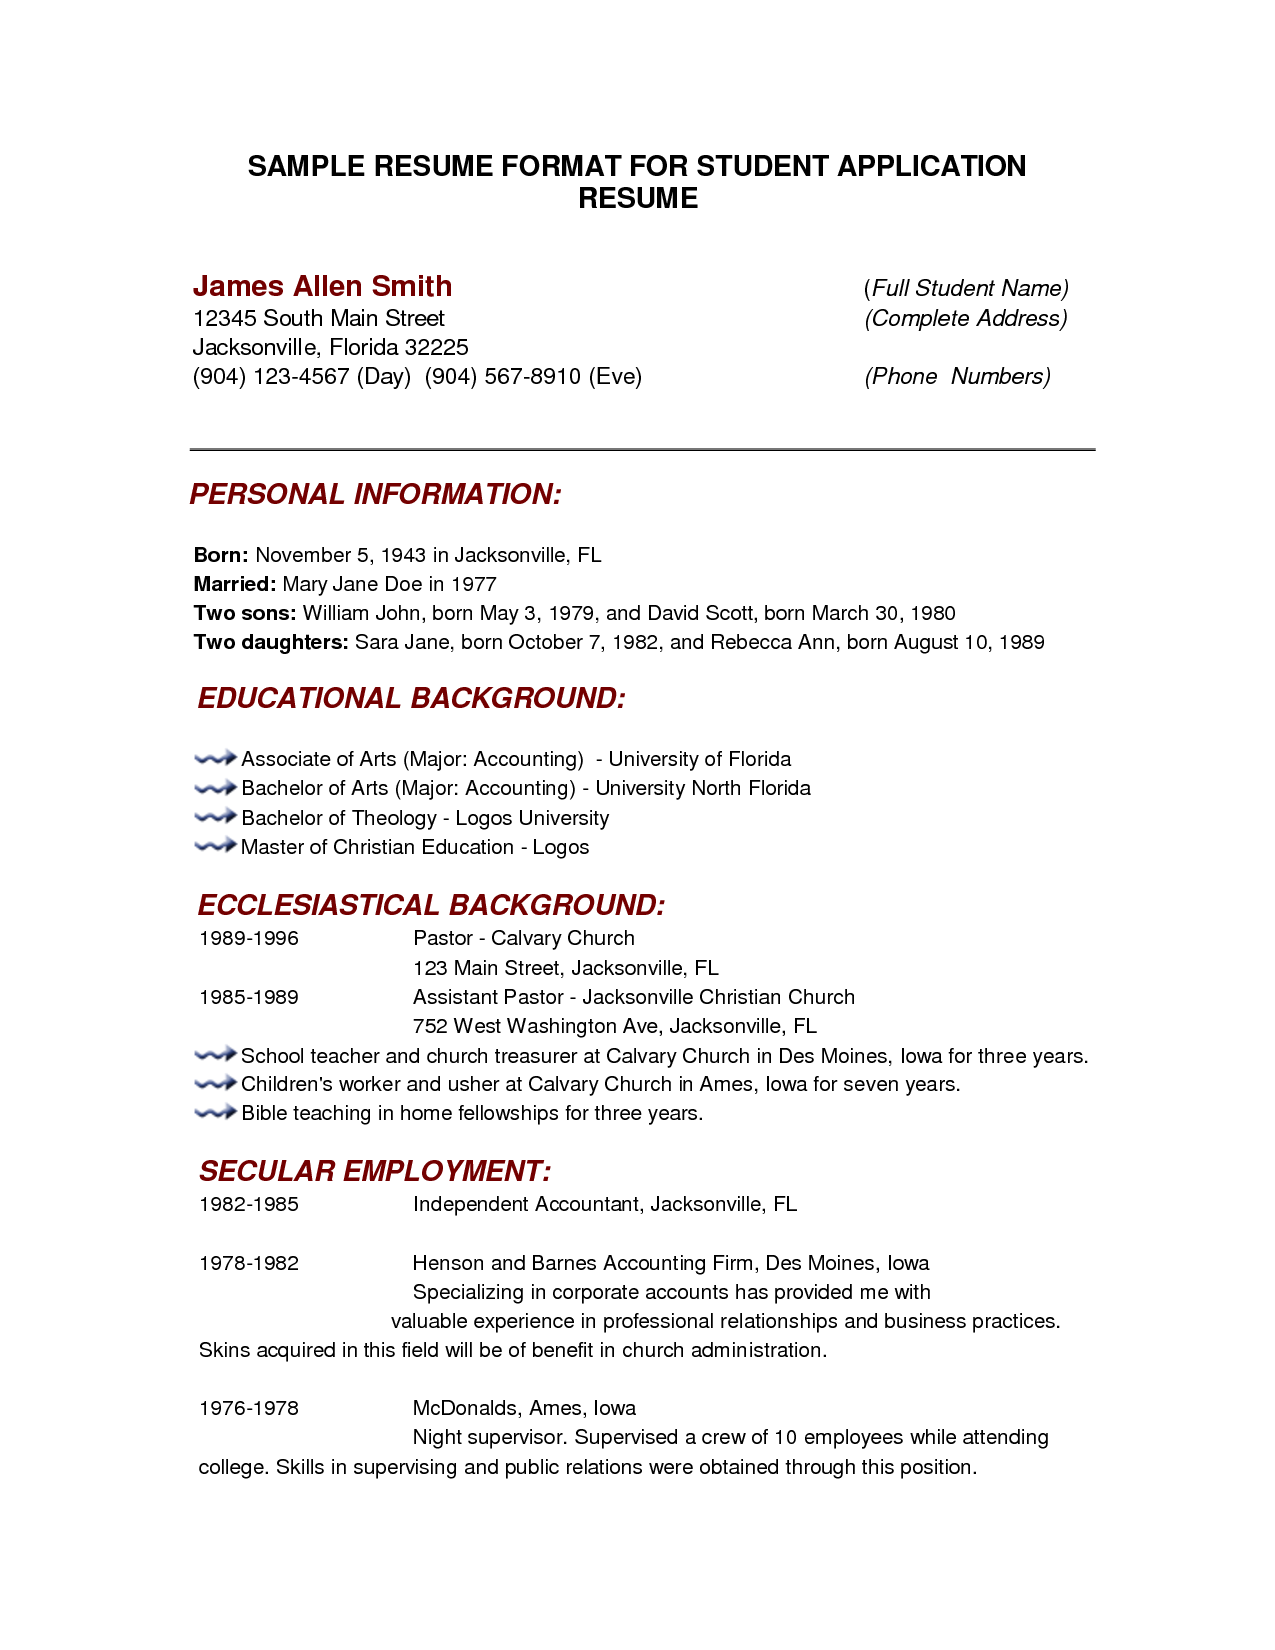 Format Of Resume For Student Example Of Resume Format For Student Resume Format Sample